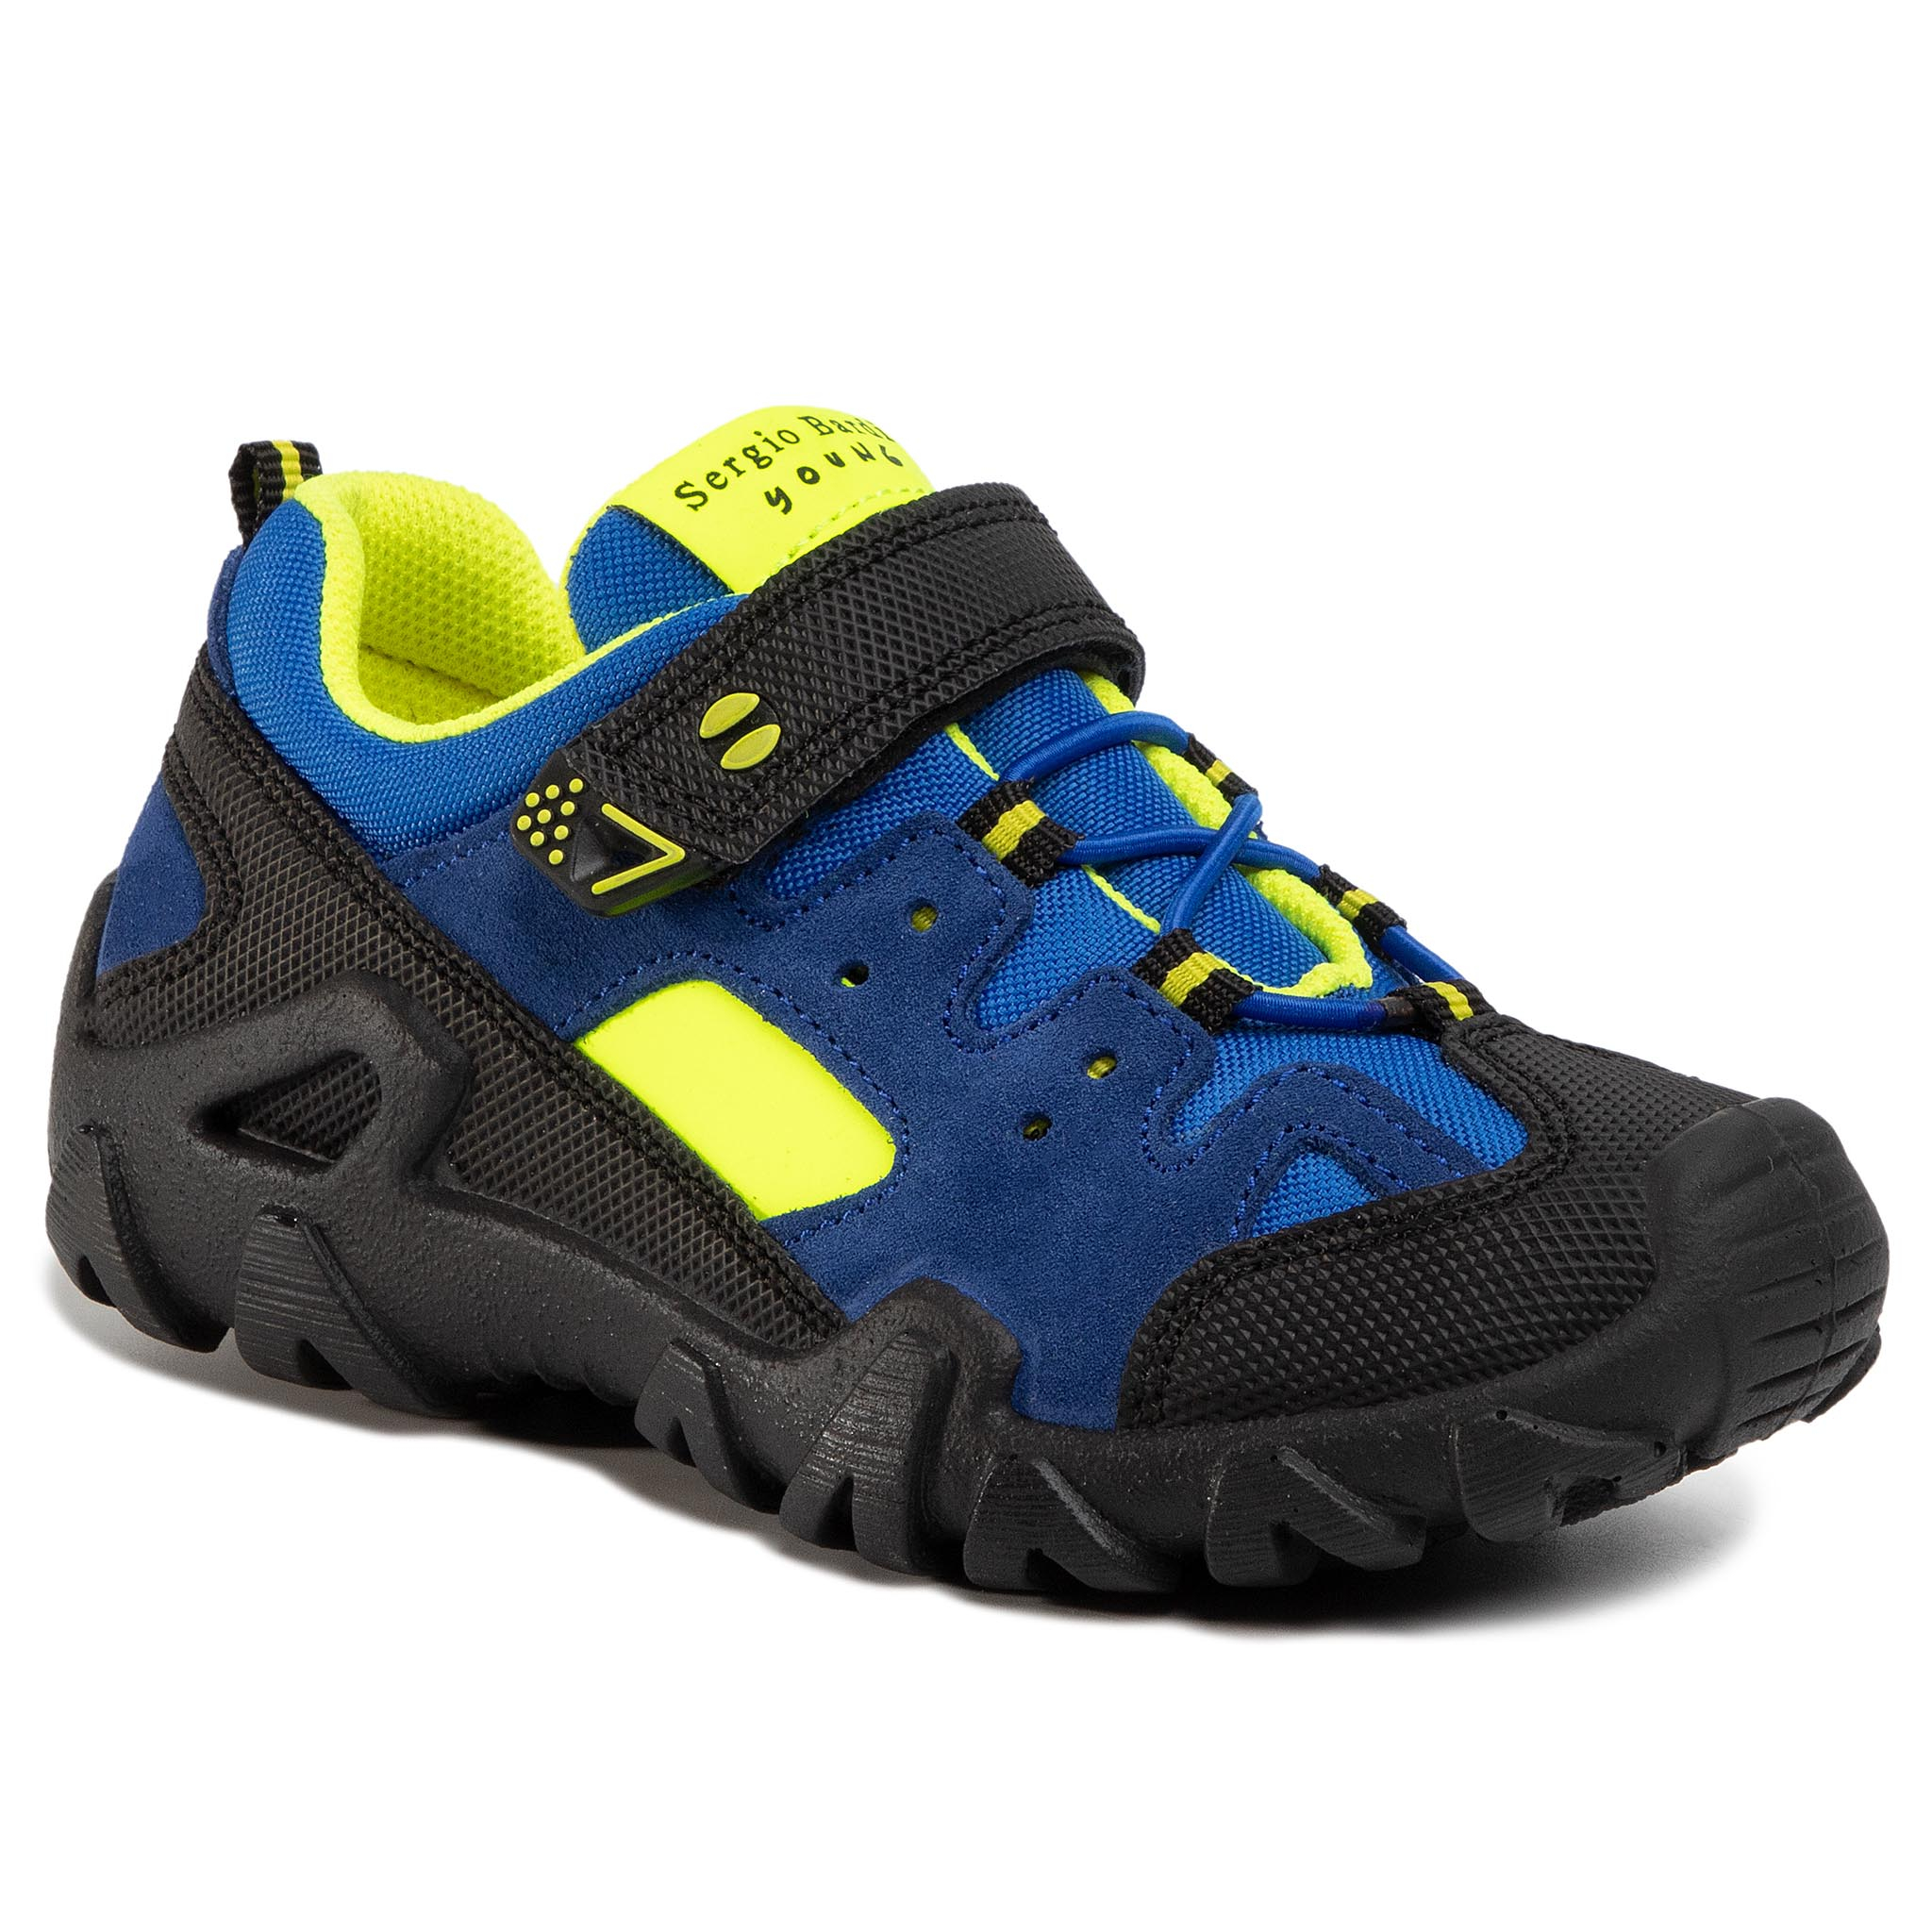 Sneakers SERGIO BARDI YOUNG - SBY-02-03-000049 619